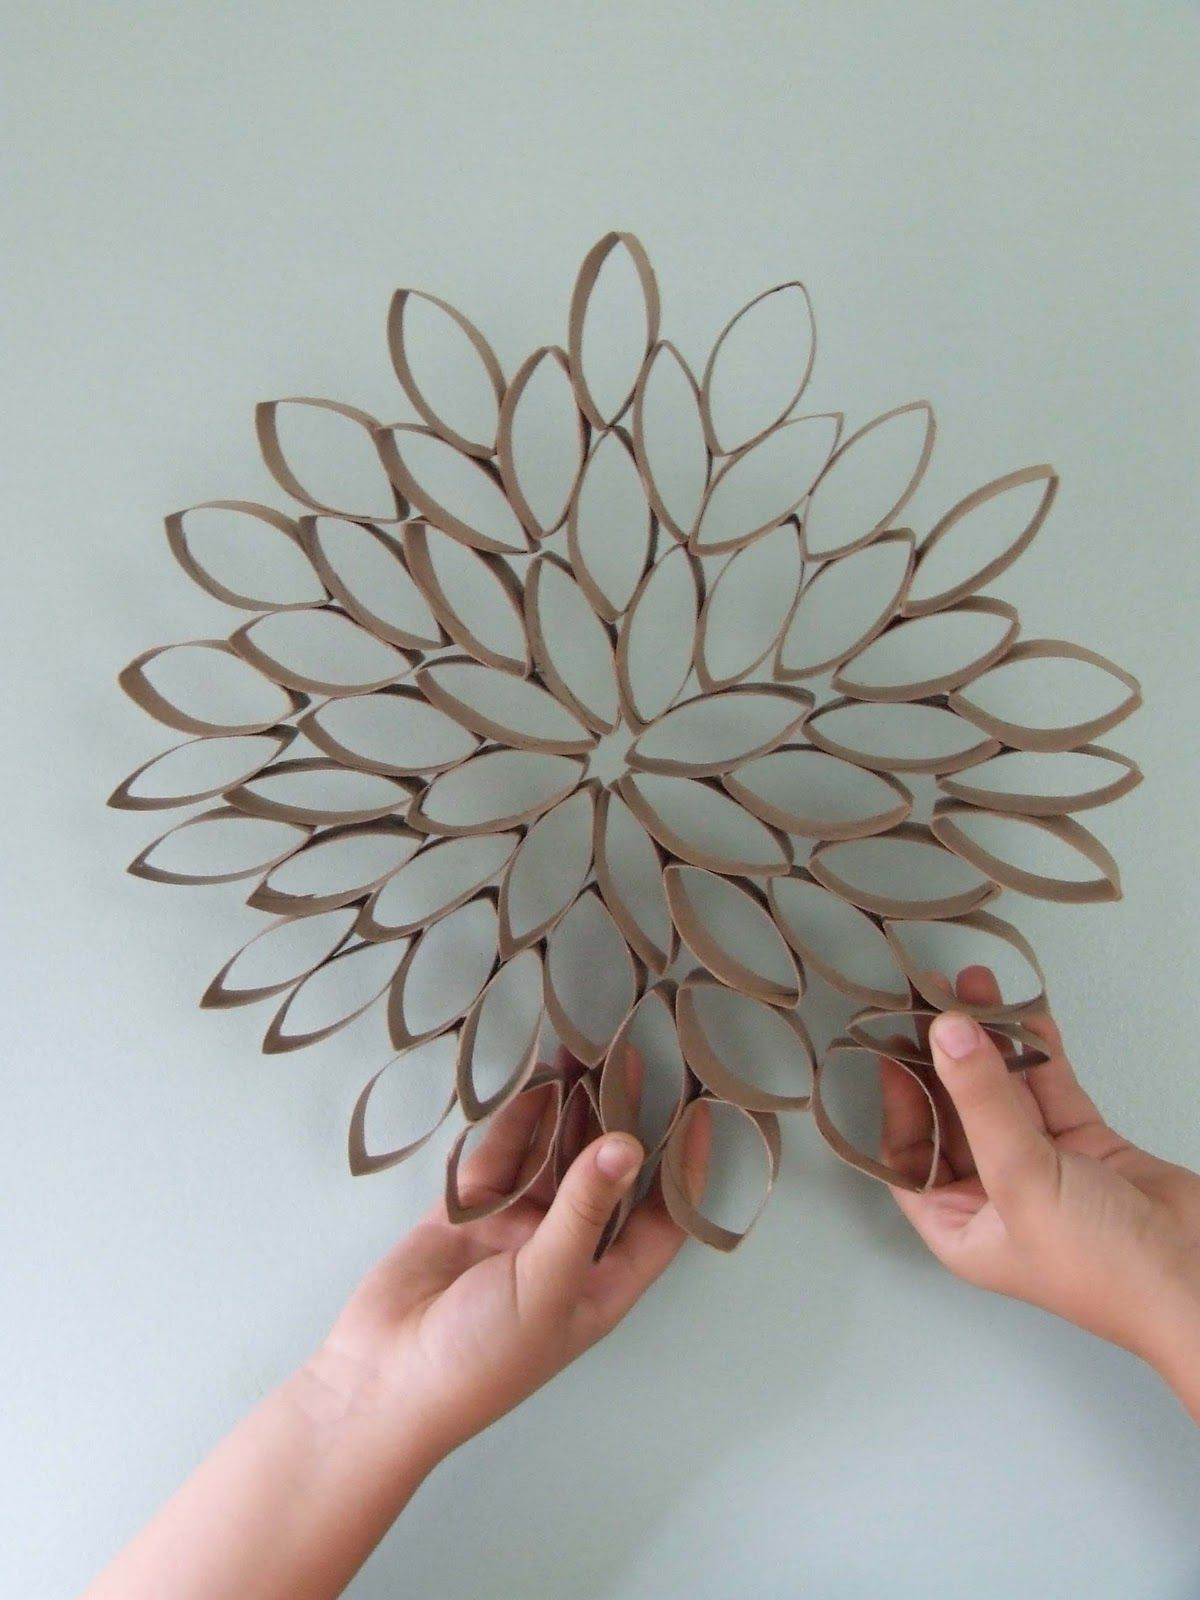 Toilet paper roll crafts wall art - I Want This On My Bedroom Wall Better Start Saving Those Toilet Paper